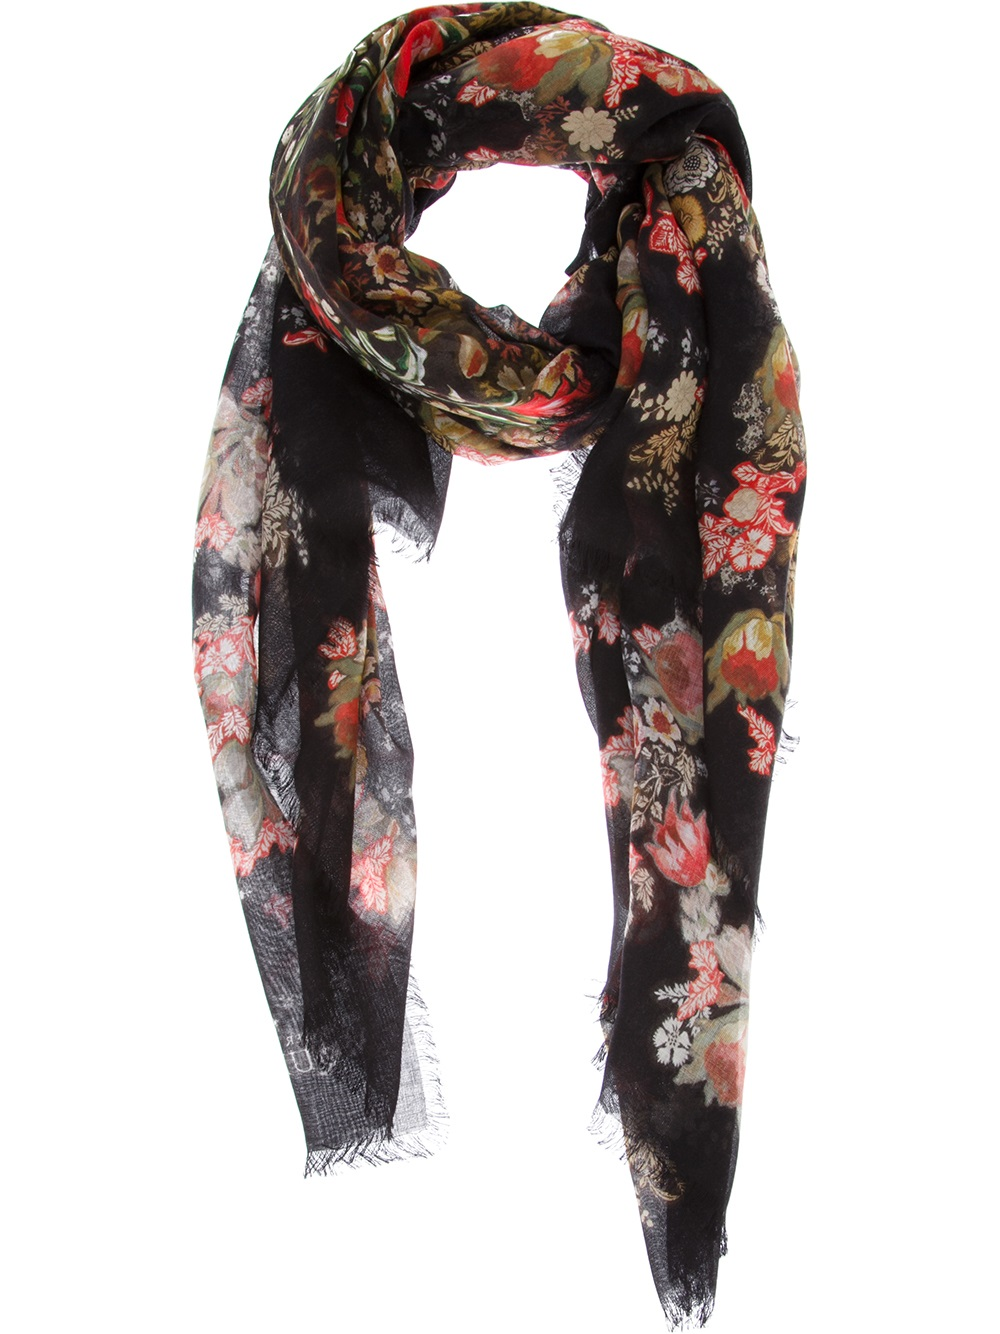 Floral and skull-print silk scarf Alexander McQueen 0SEsz